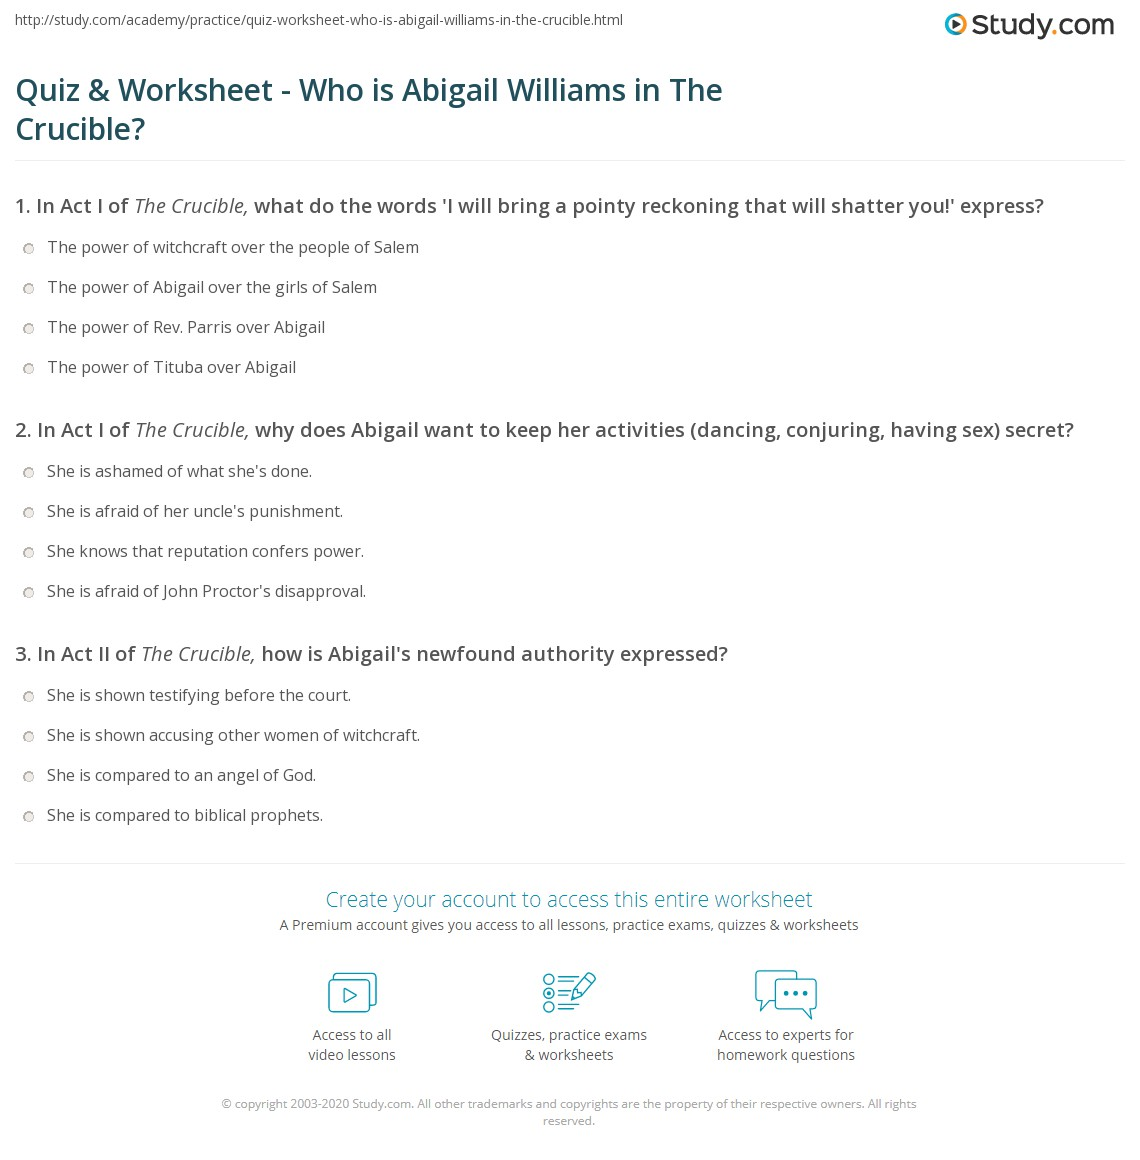 the crucible worksheet delibertad quiz worksheet who is abigail williams in the crucible